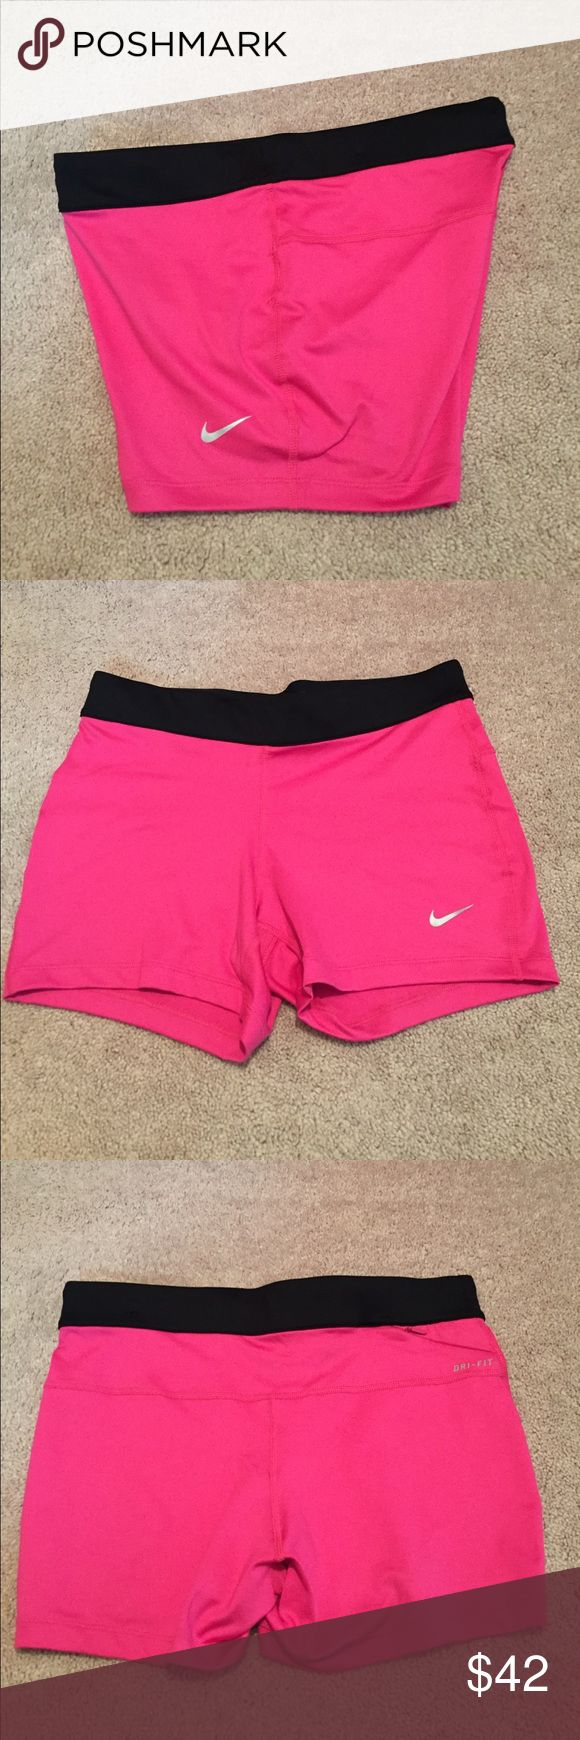 """NWOT women's Nike size medium spandex New without tags women's Nike running size medium dri-fit spandex shorts. Shorts have a drawstring tie as well as a small zippered pocket on the back of the shorts. The waist band can be rolled down and a saying on the back is shown and says """"run fast live fearless"""" Nike Shorts"""